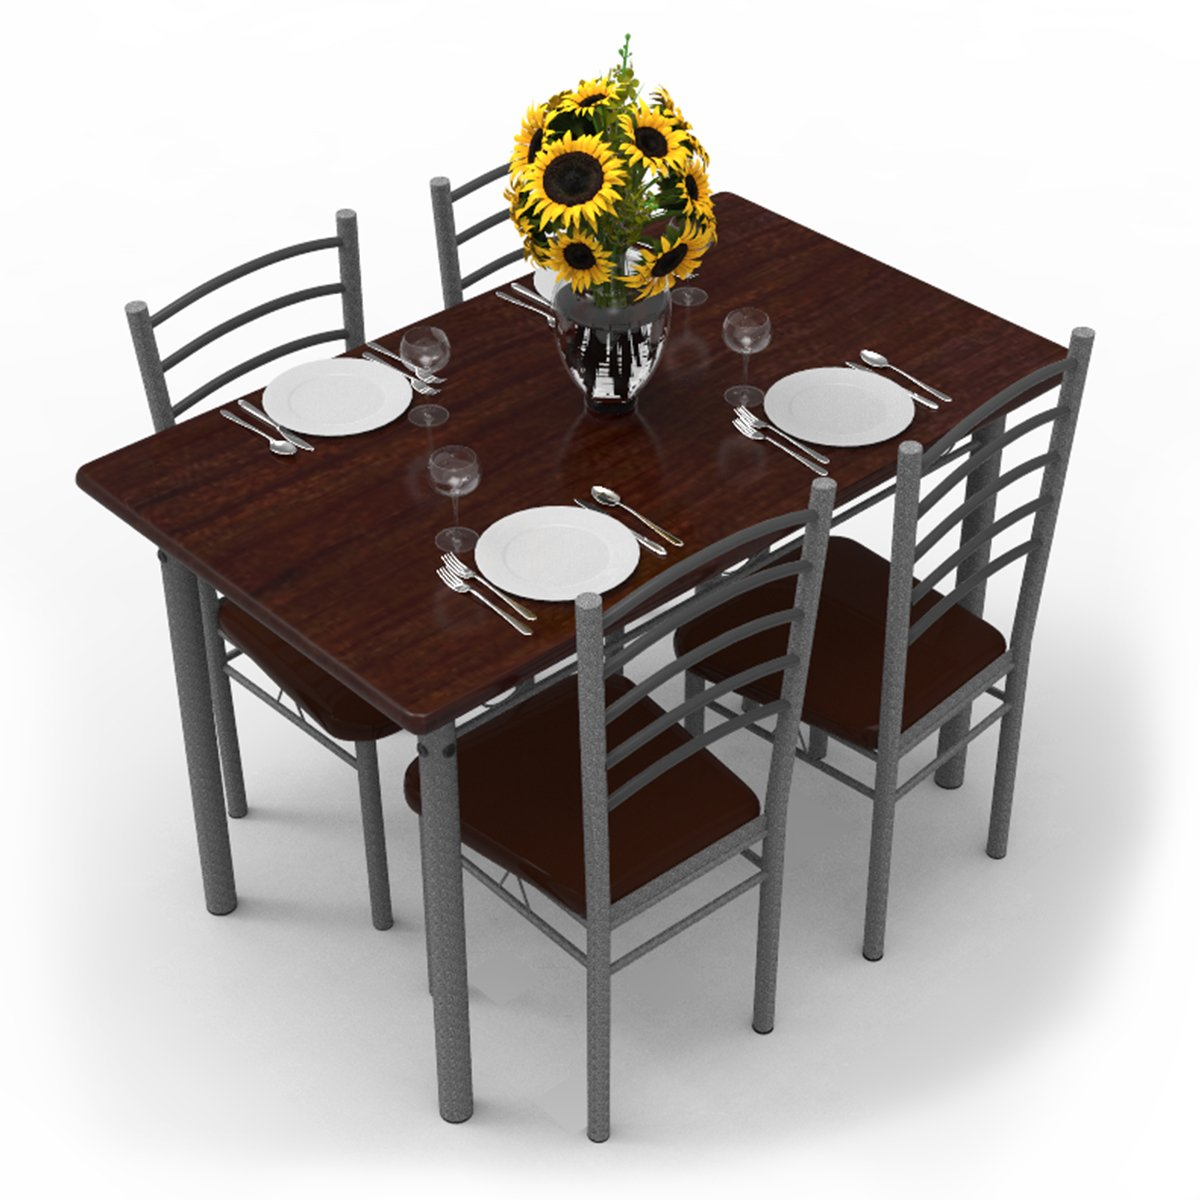 Dining Table Set: Buy Dining Table Set Online at Best Prices in ...